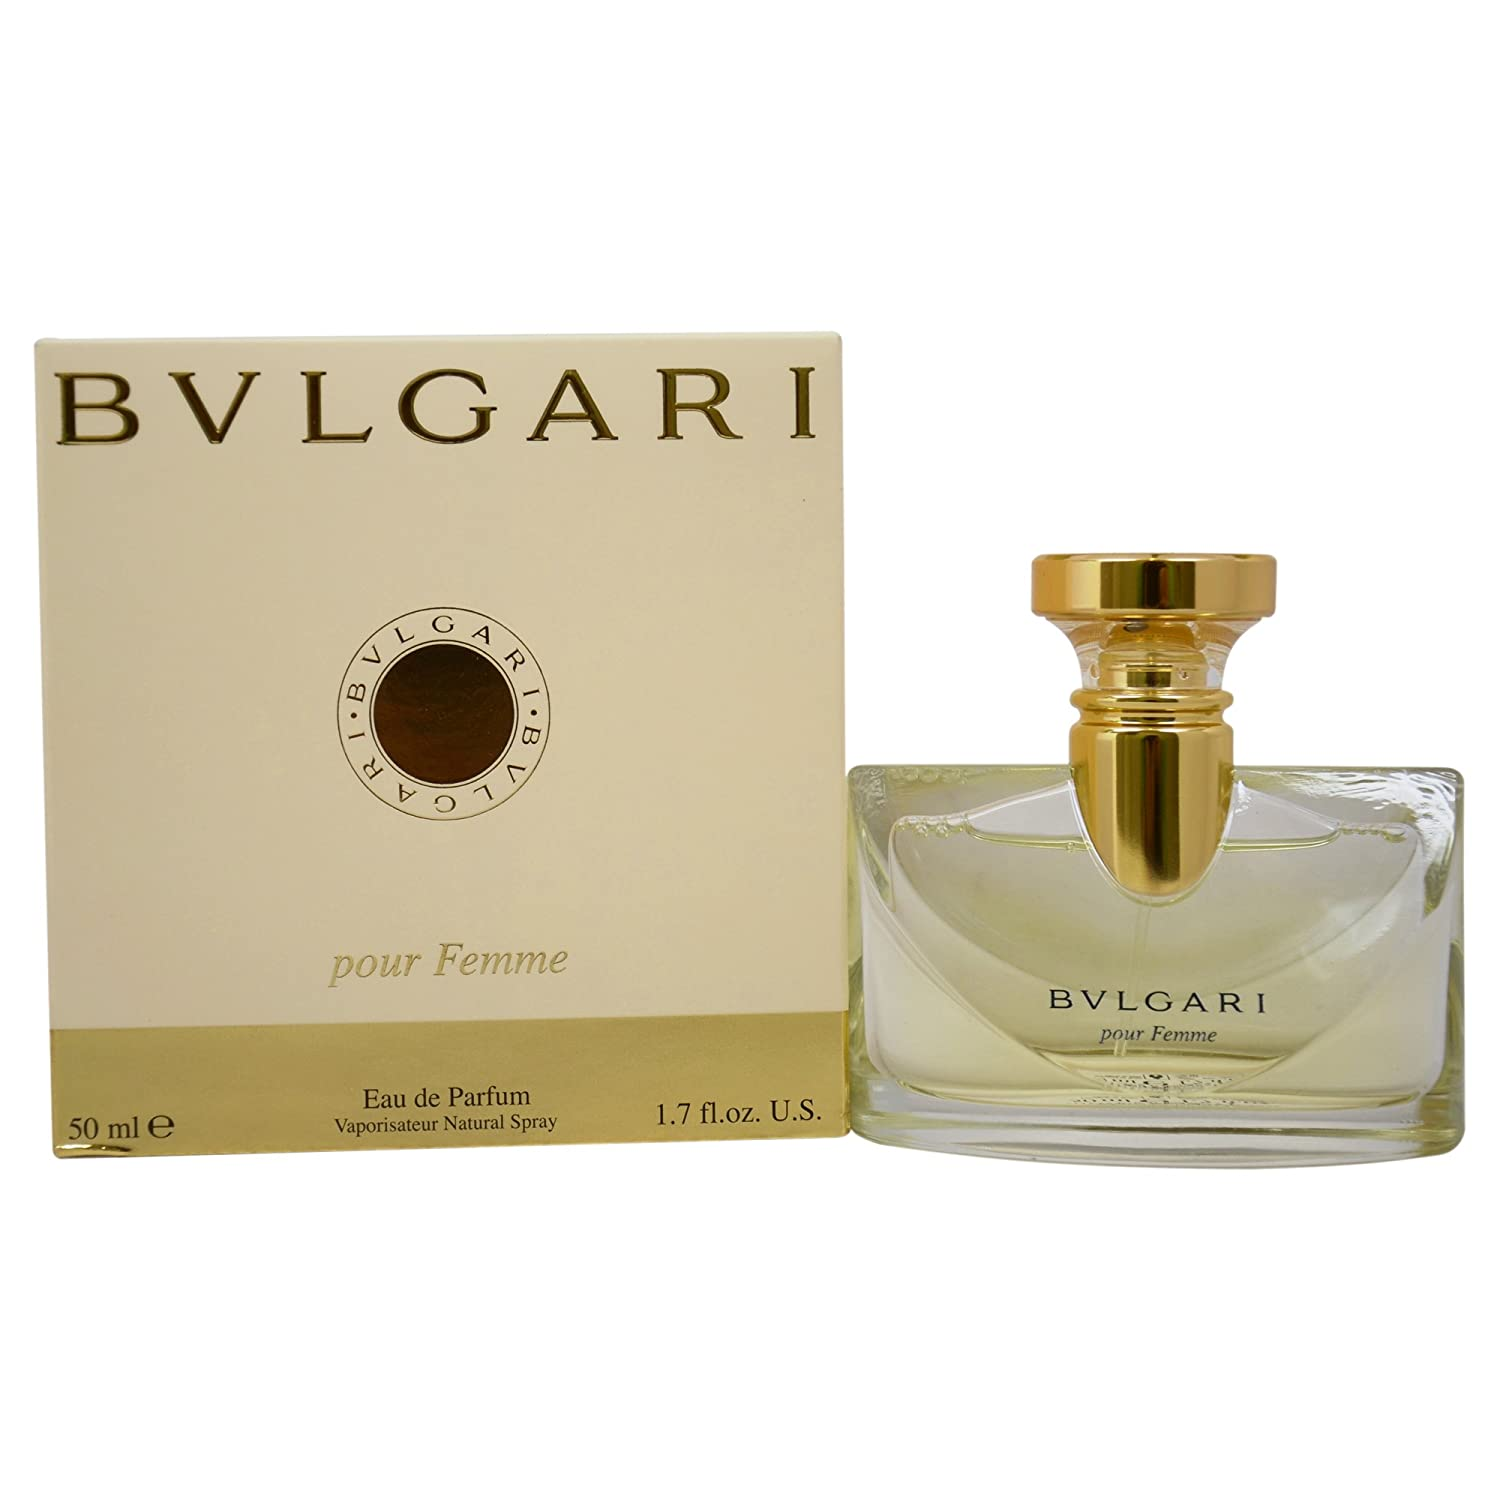 Bvlgari 1-UG-19-01 - EDP Spray, 50 ml BULGARI-402494 BUL82215